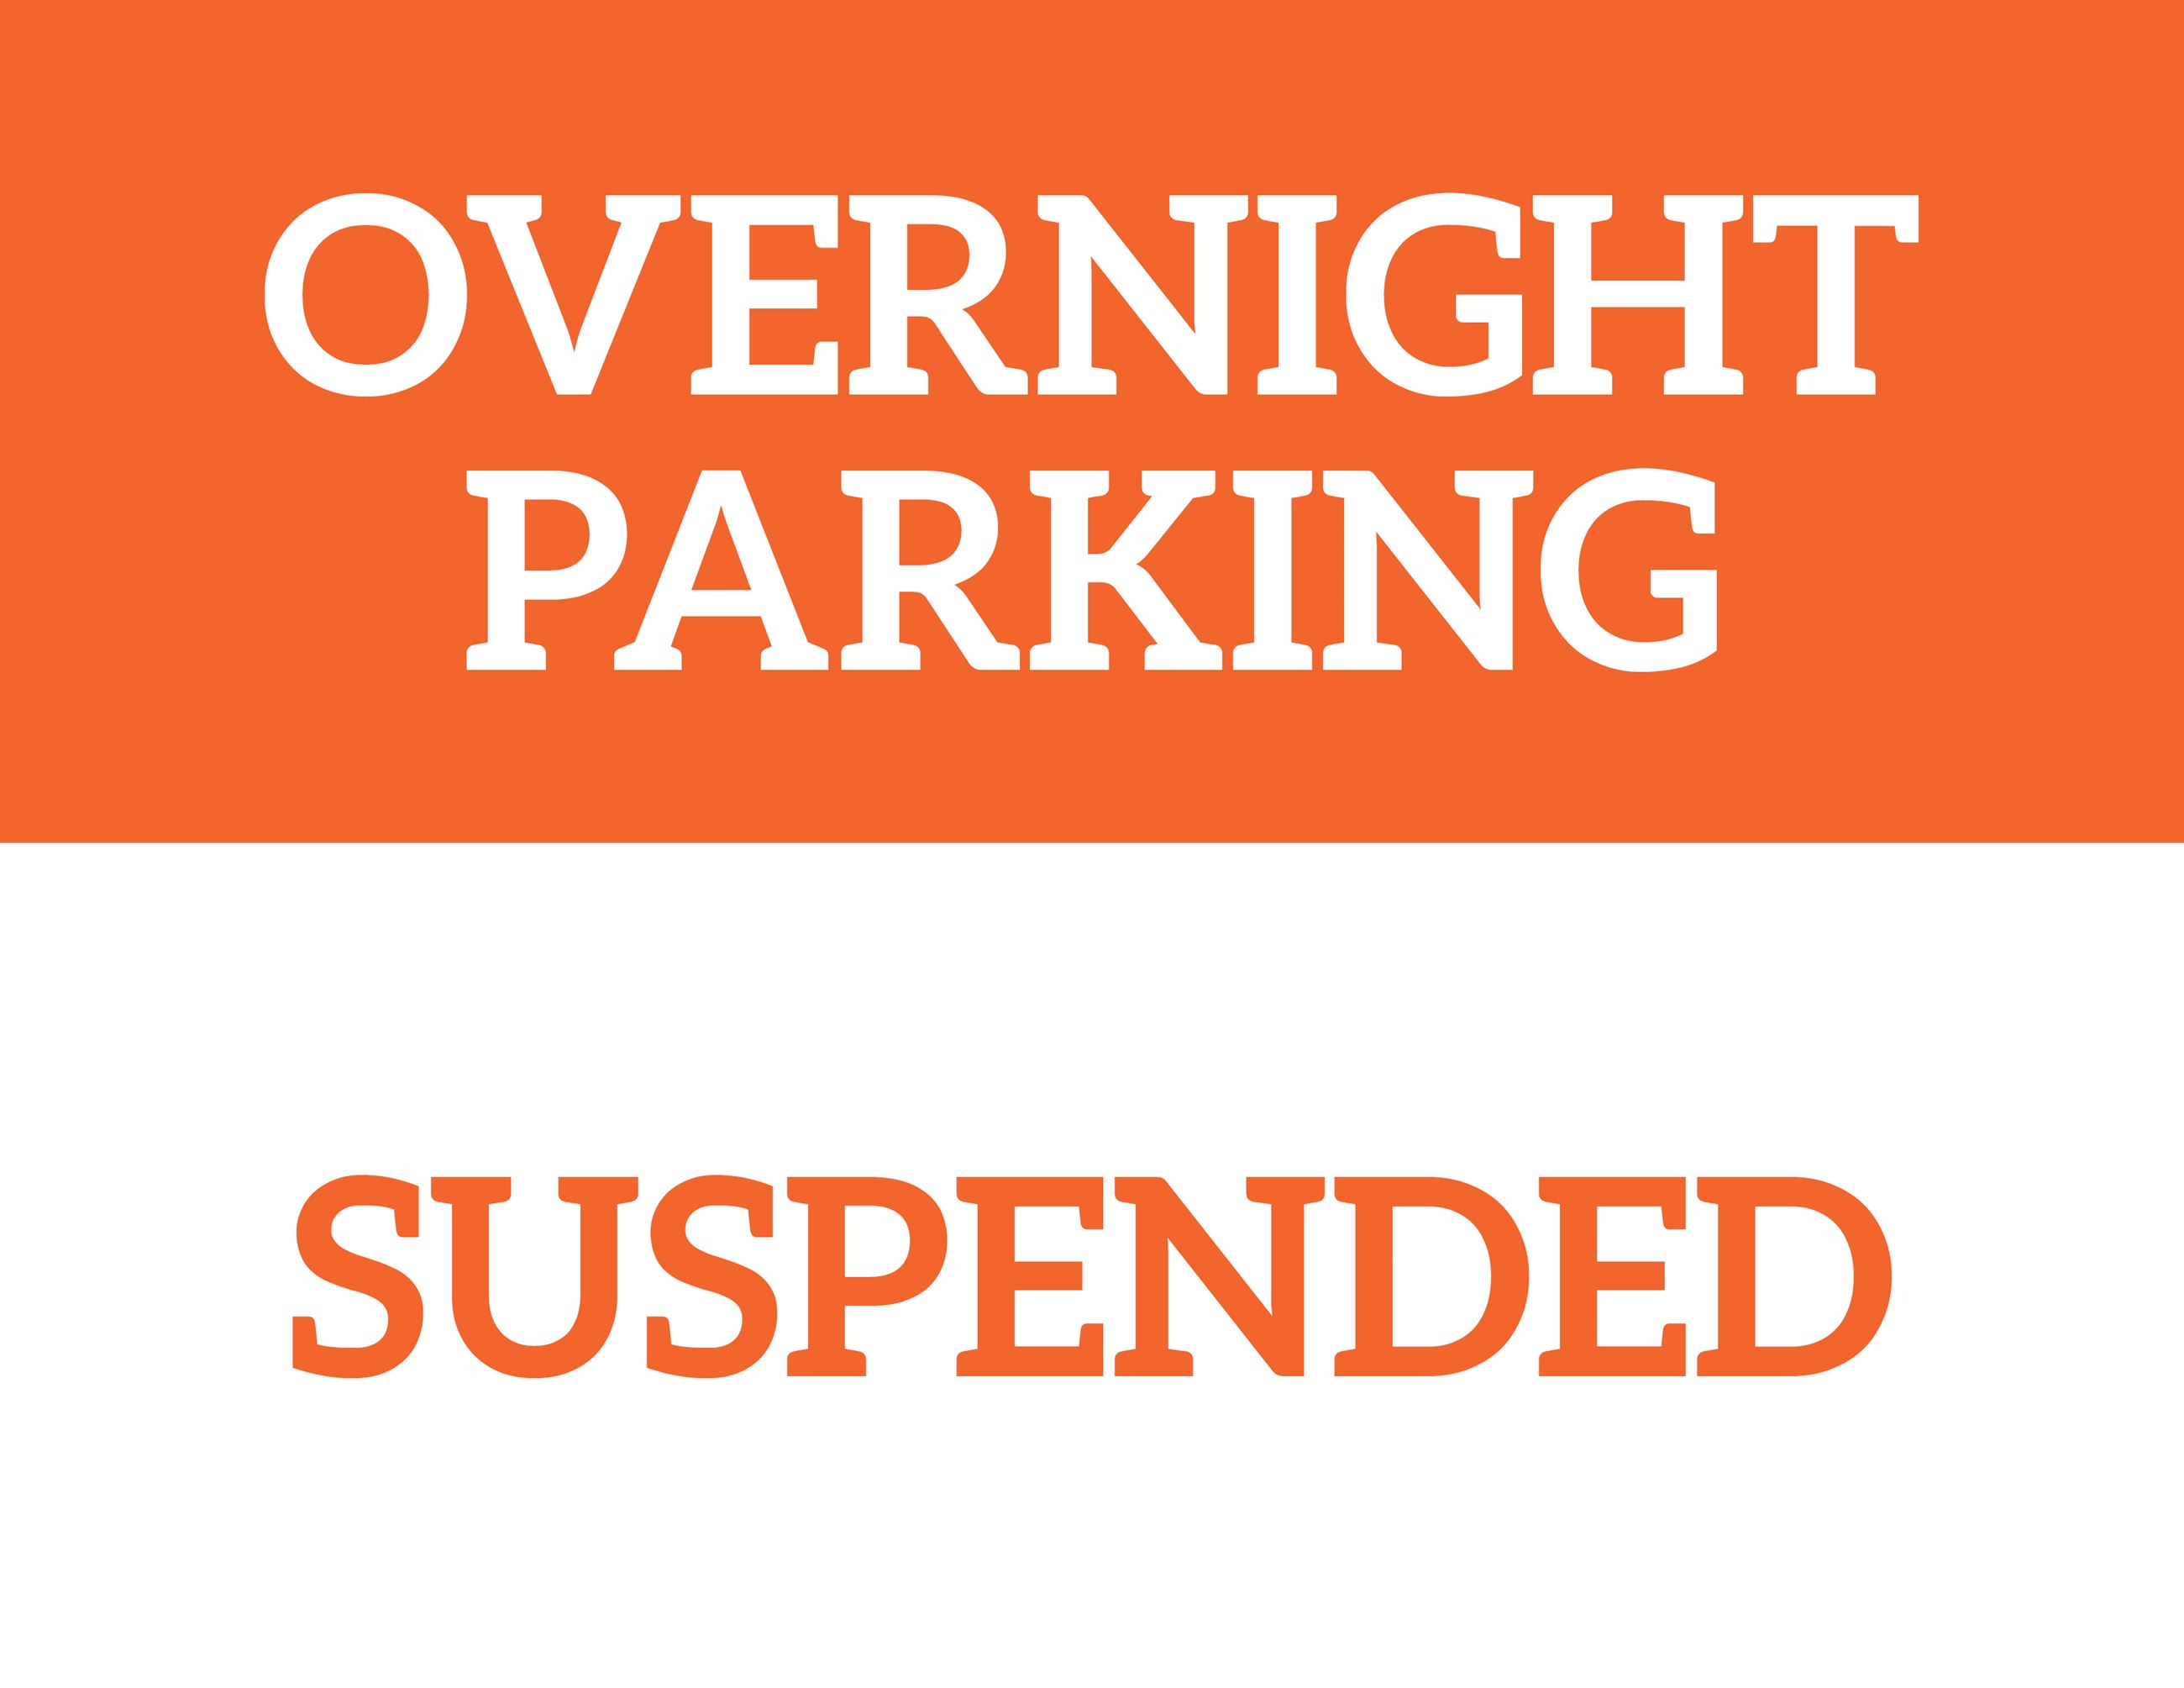 Overnight Parking Suspended_Construction